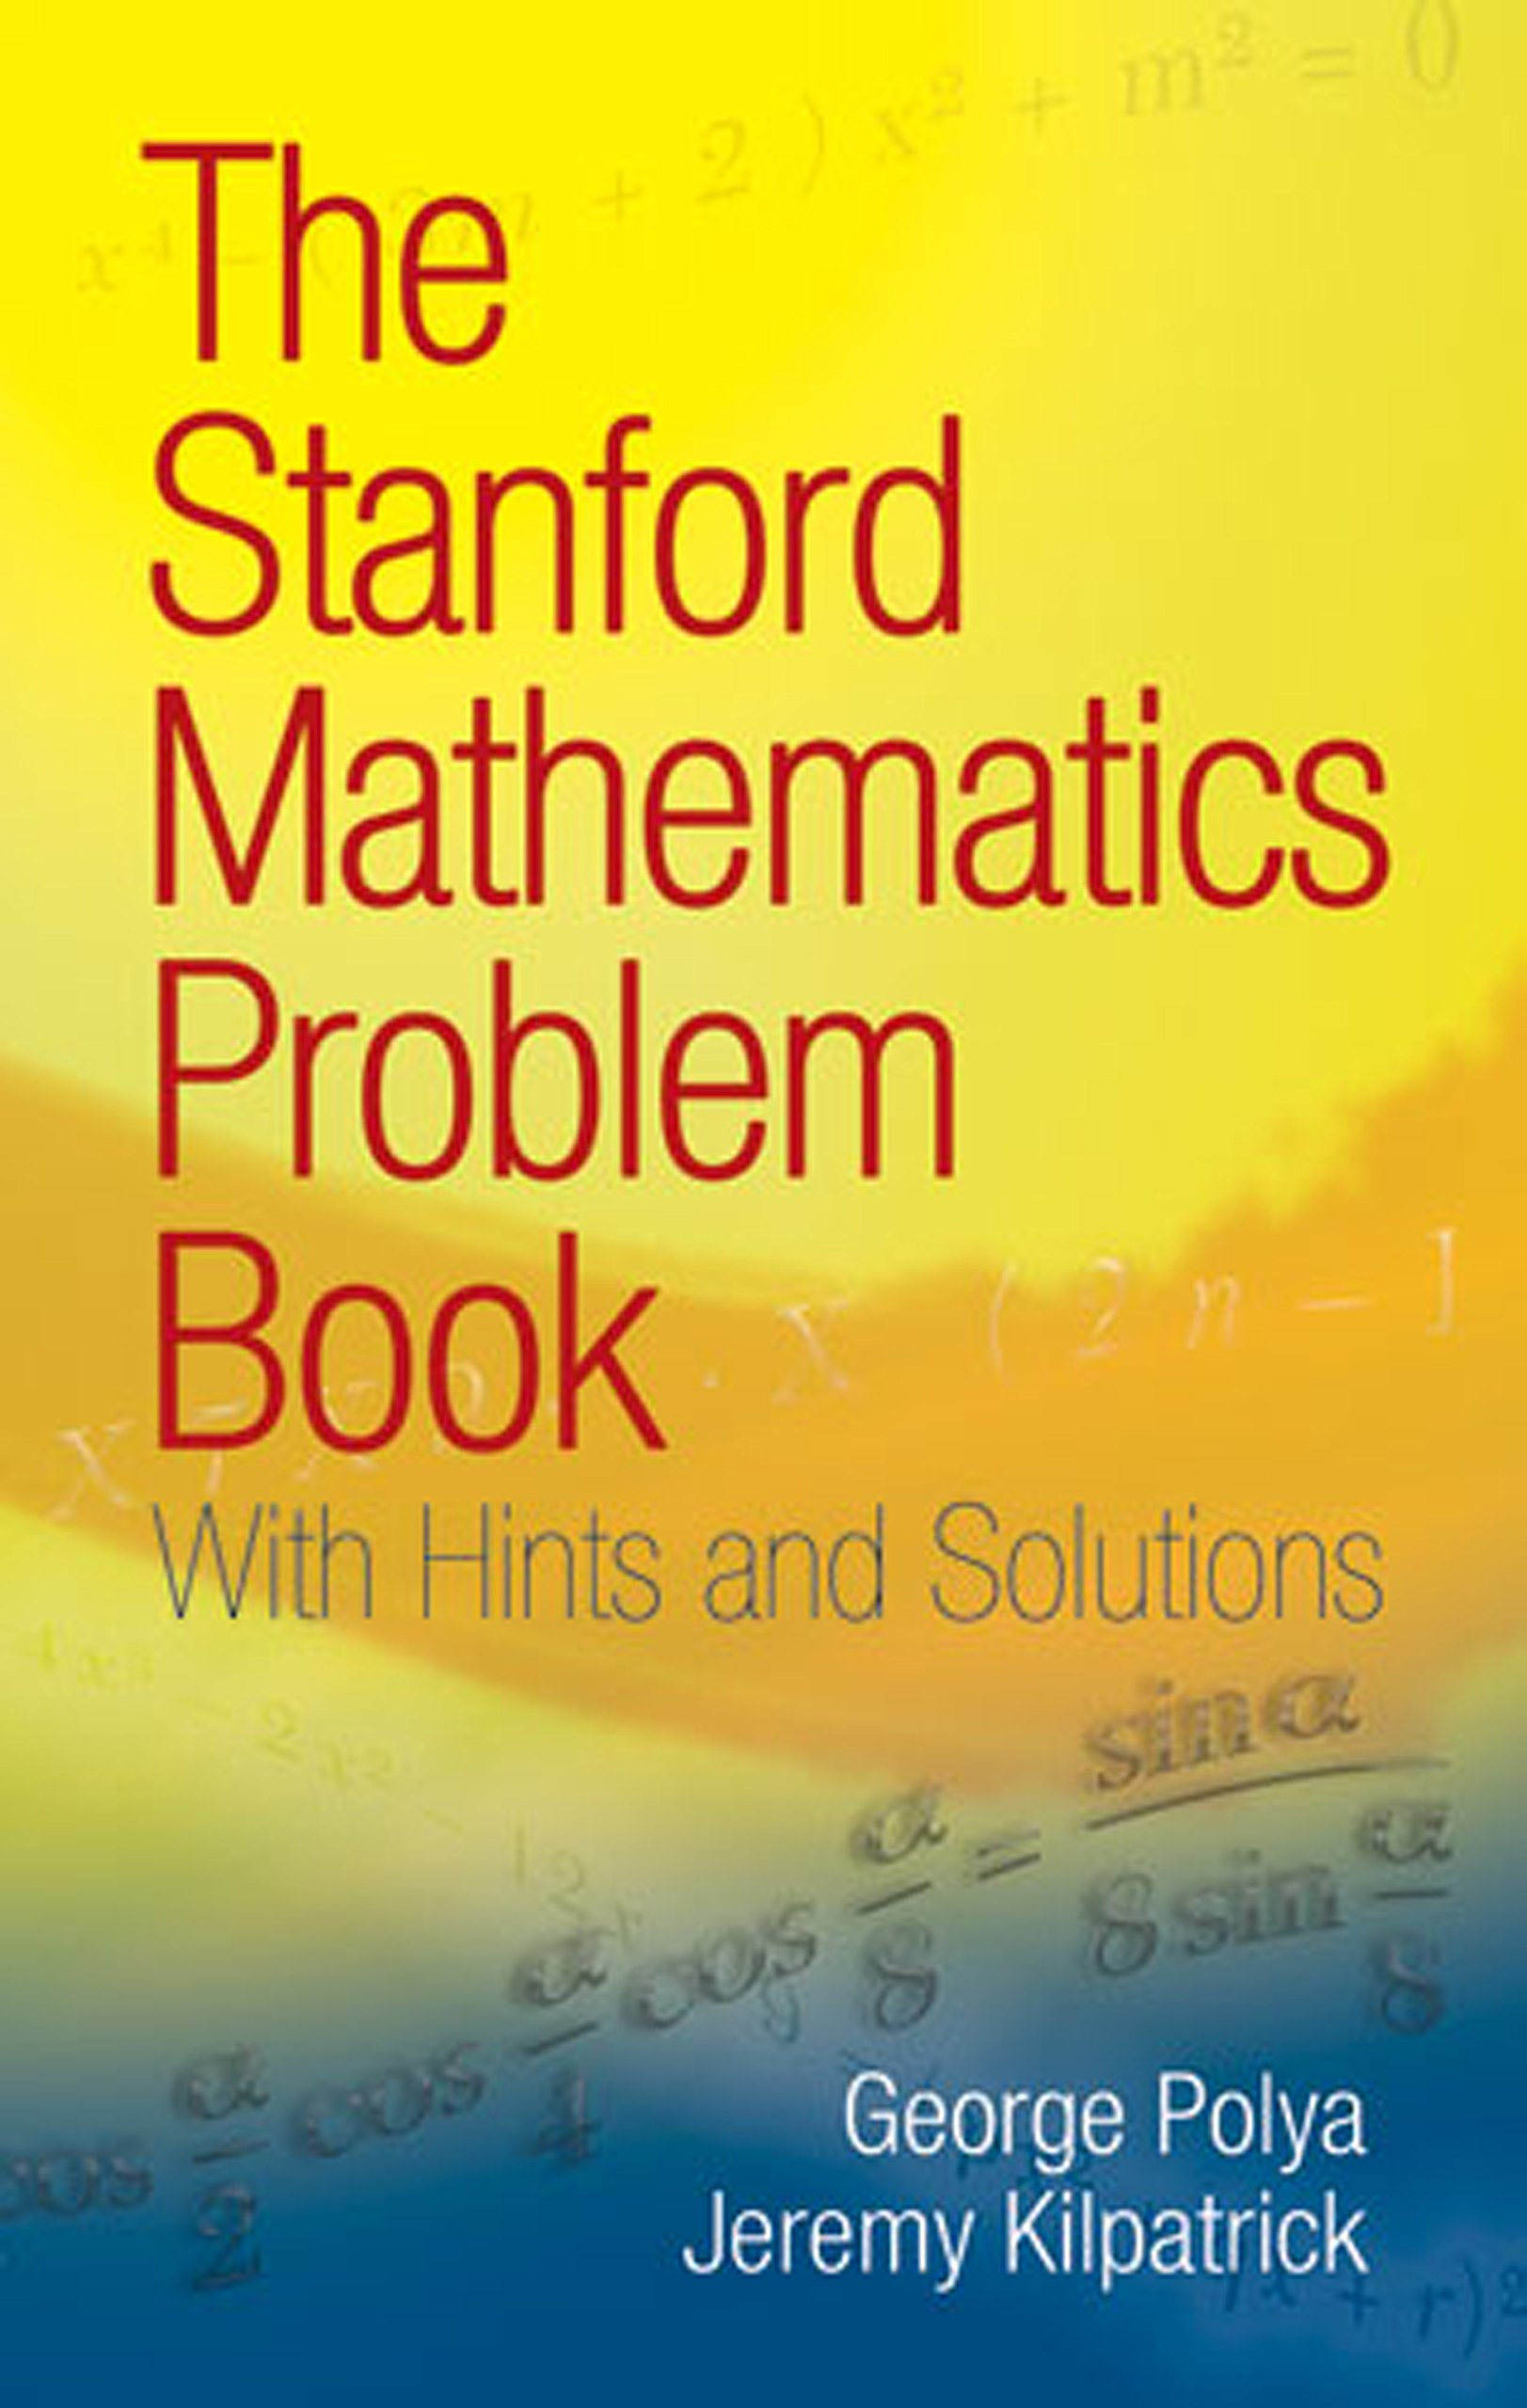 The Stanford Mathematics Problem Book: With Hints and Solutions (Dover Books on Mathematics) (English Edition)